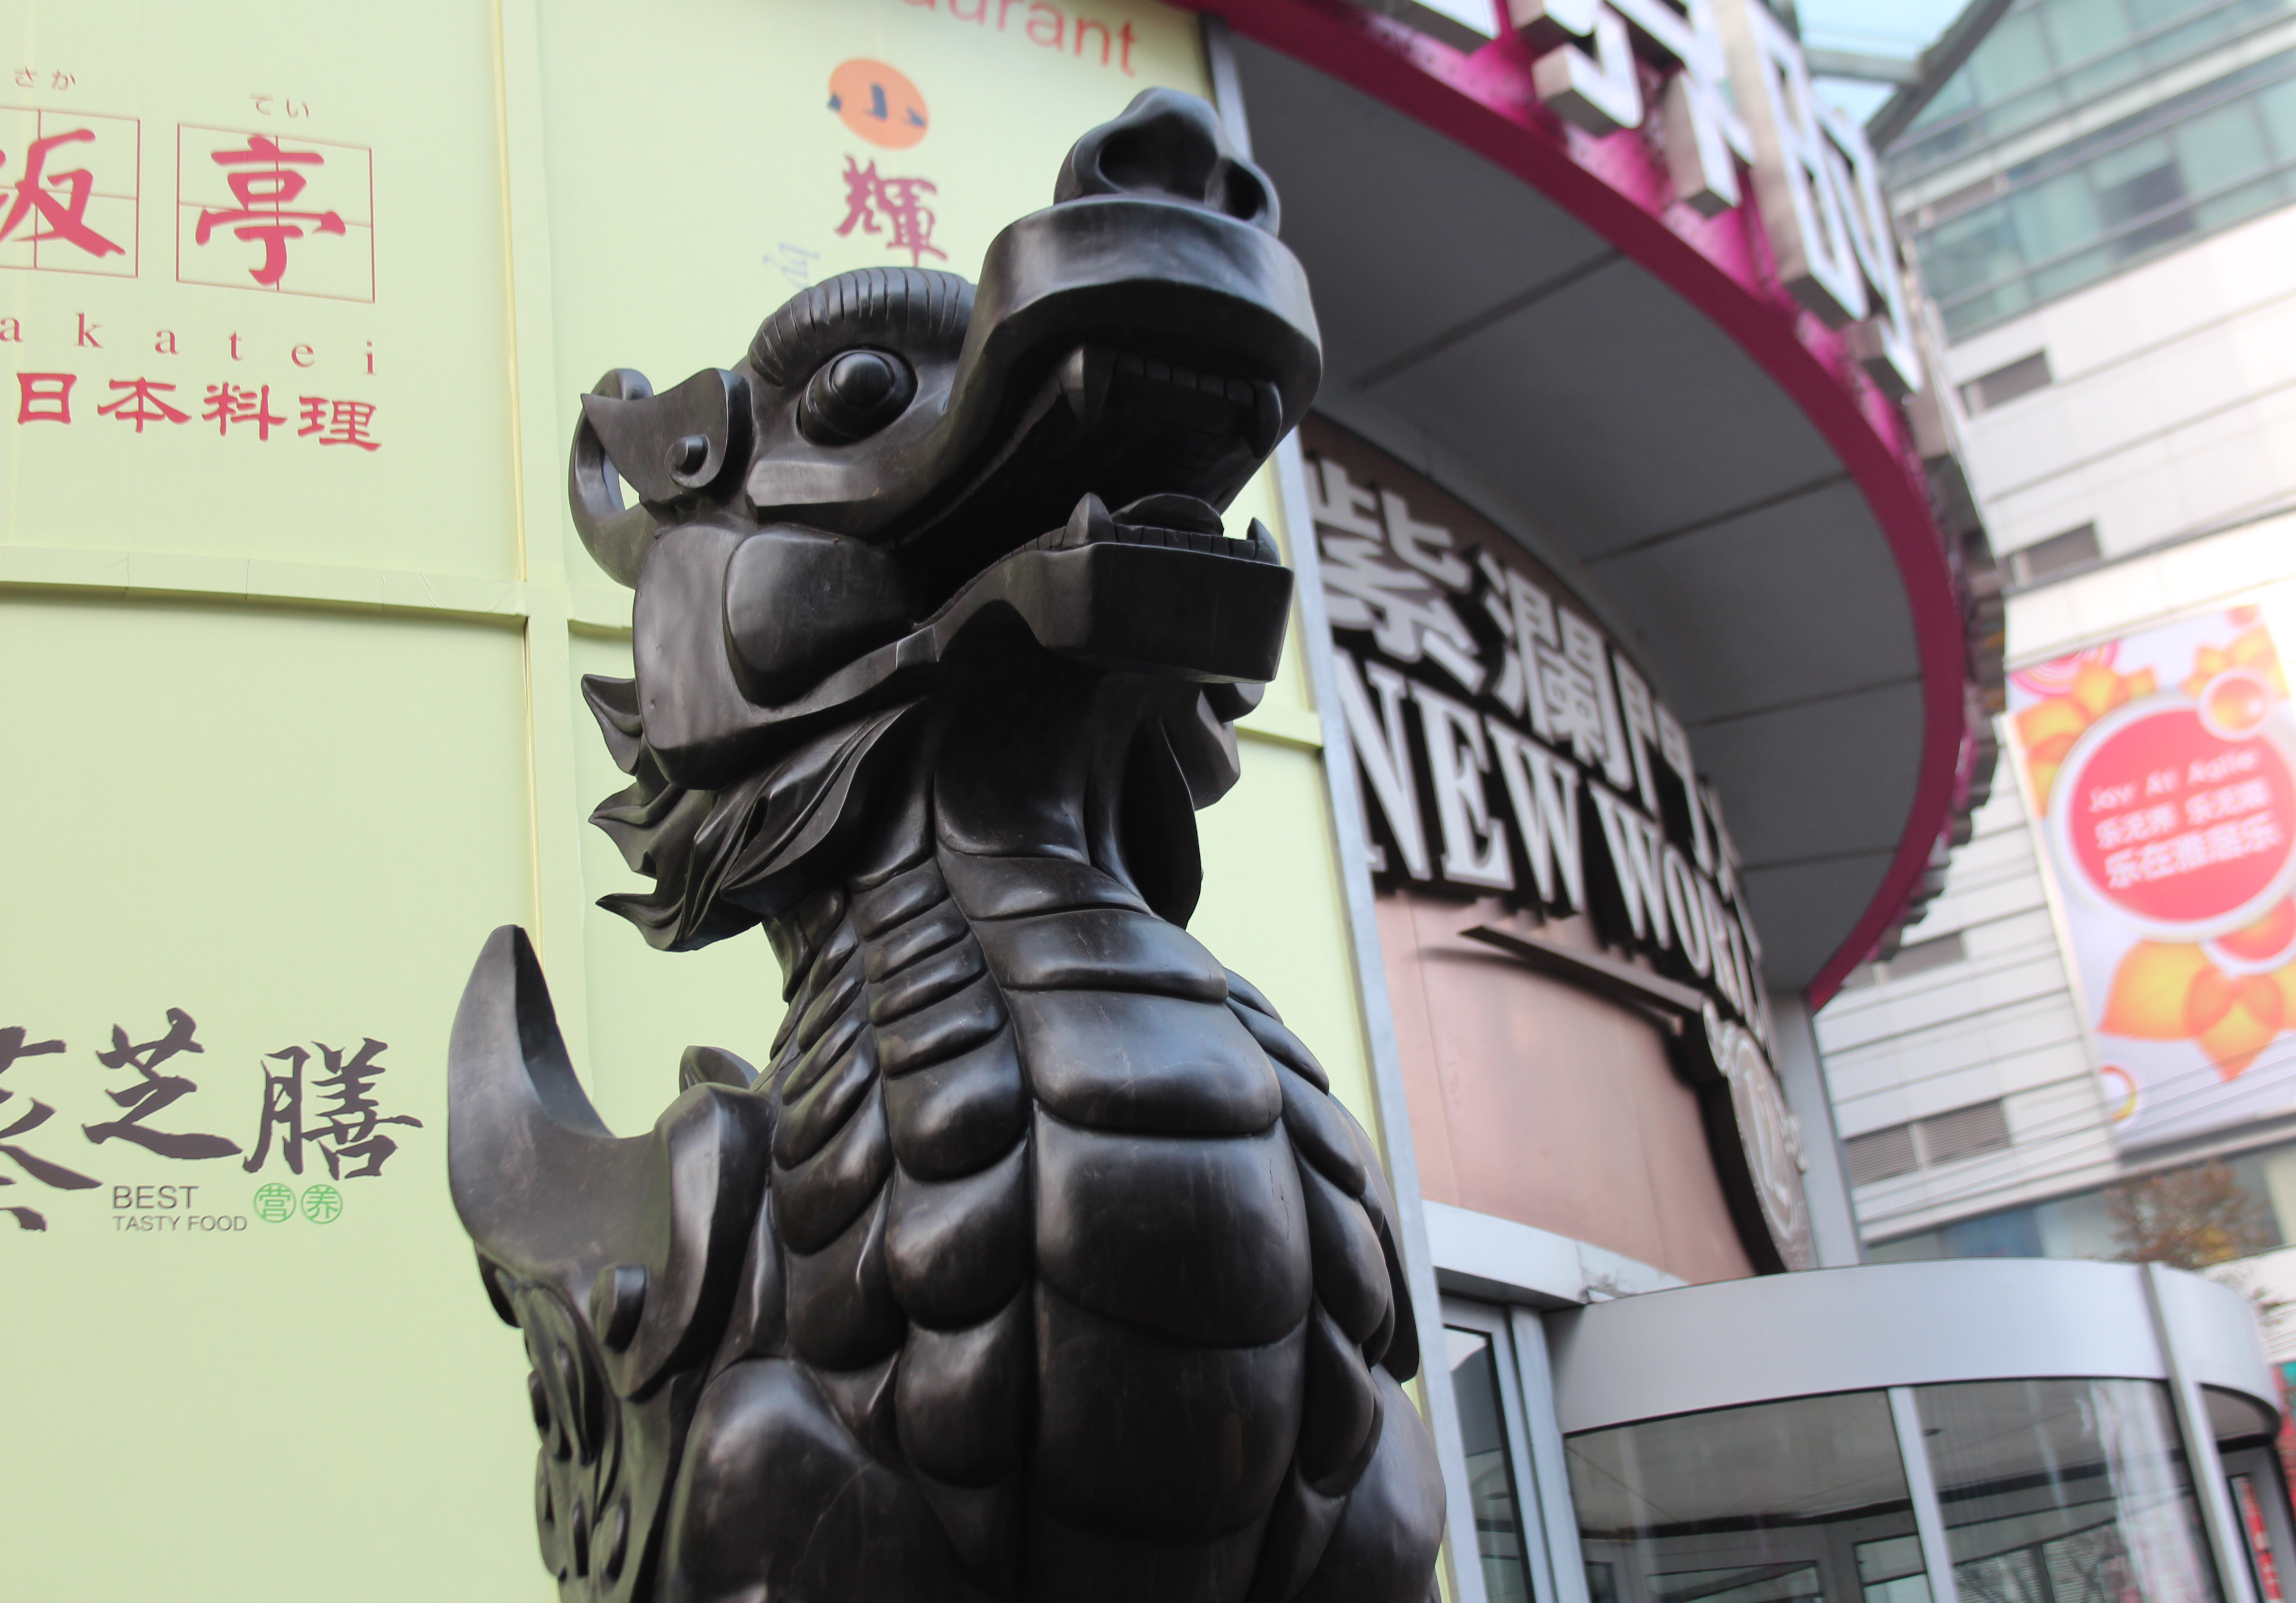 A dragon statue guards the entrance of the New World shopping center in Shanghai. Photo by Larisa Epatko/PBS NewsHour